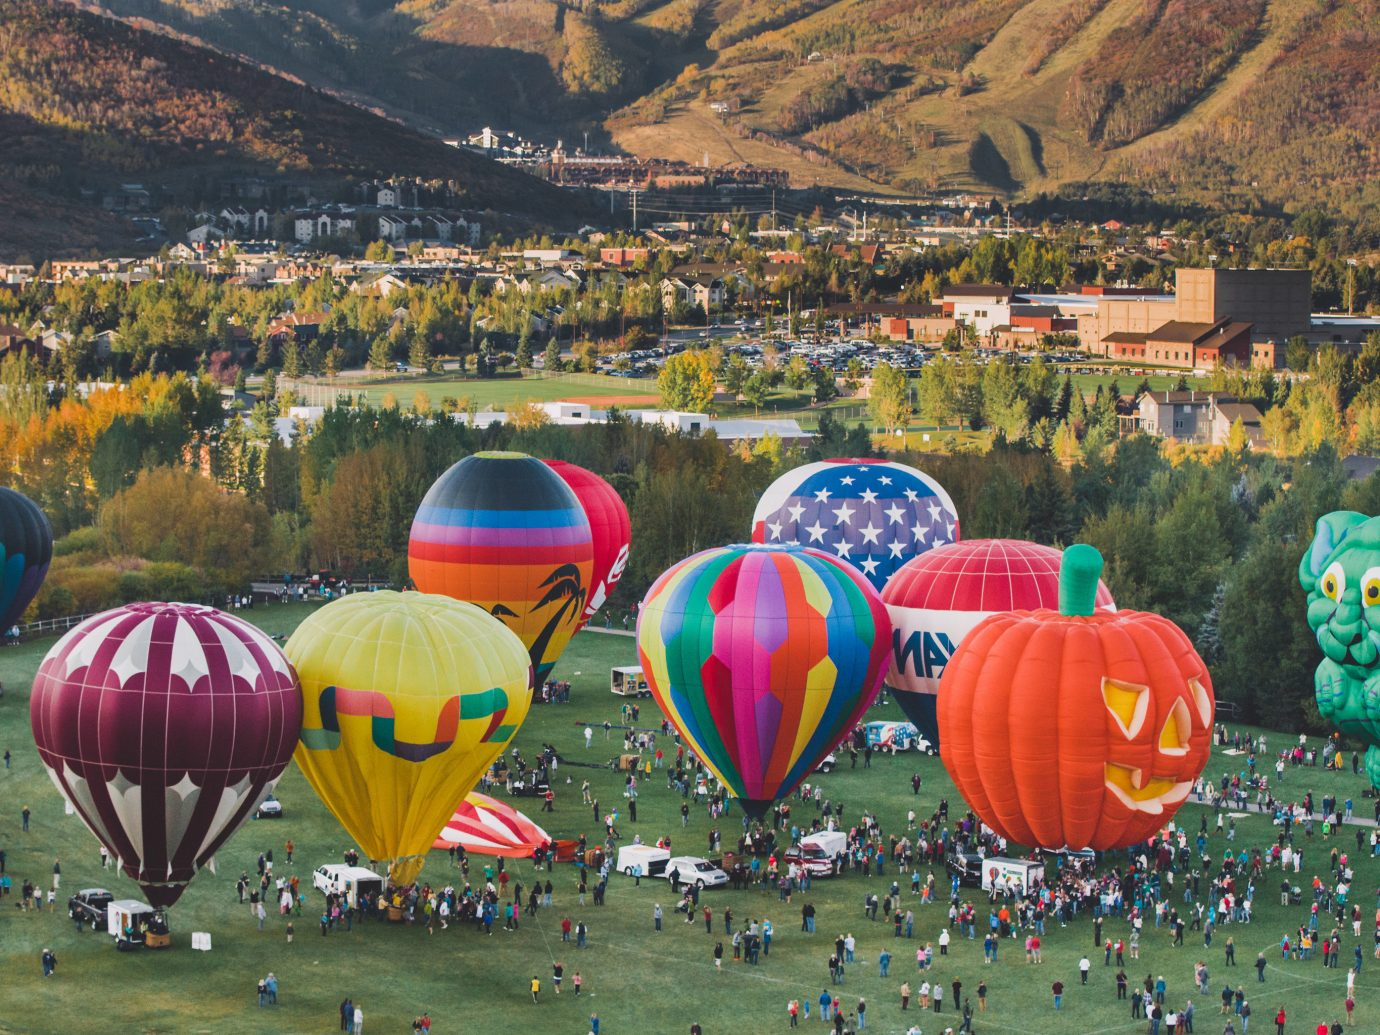 Trip Ideas aircraft balloon transport mountain hot air ballooning Hot Air Balloon colorful vehicle atmosphere of earth toy colored colors painting